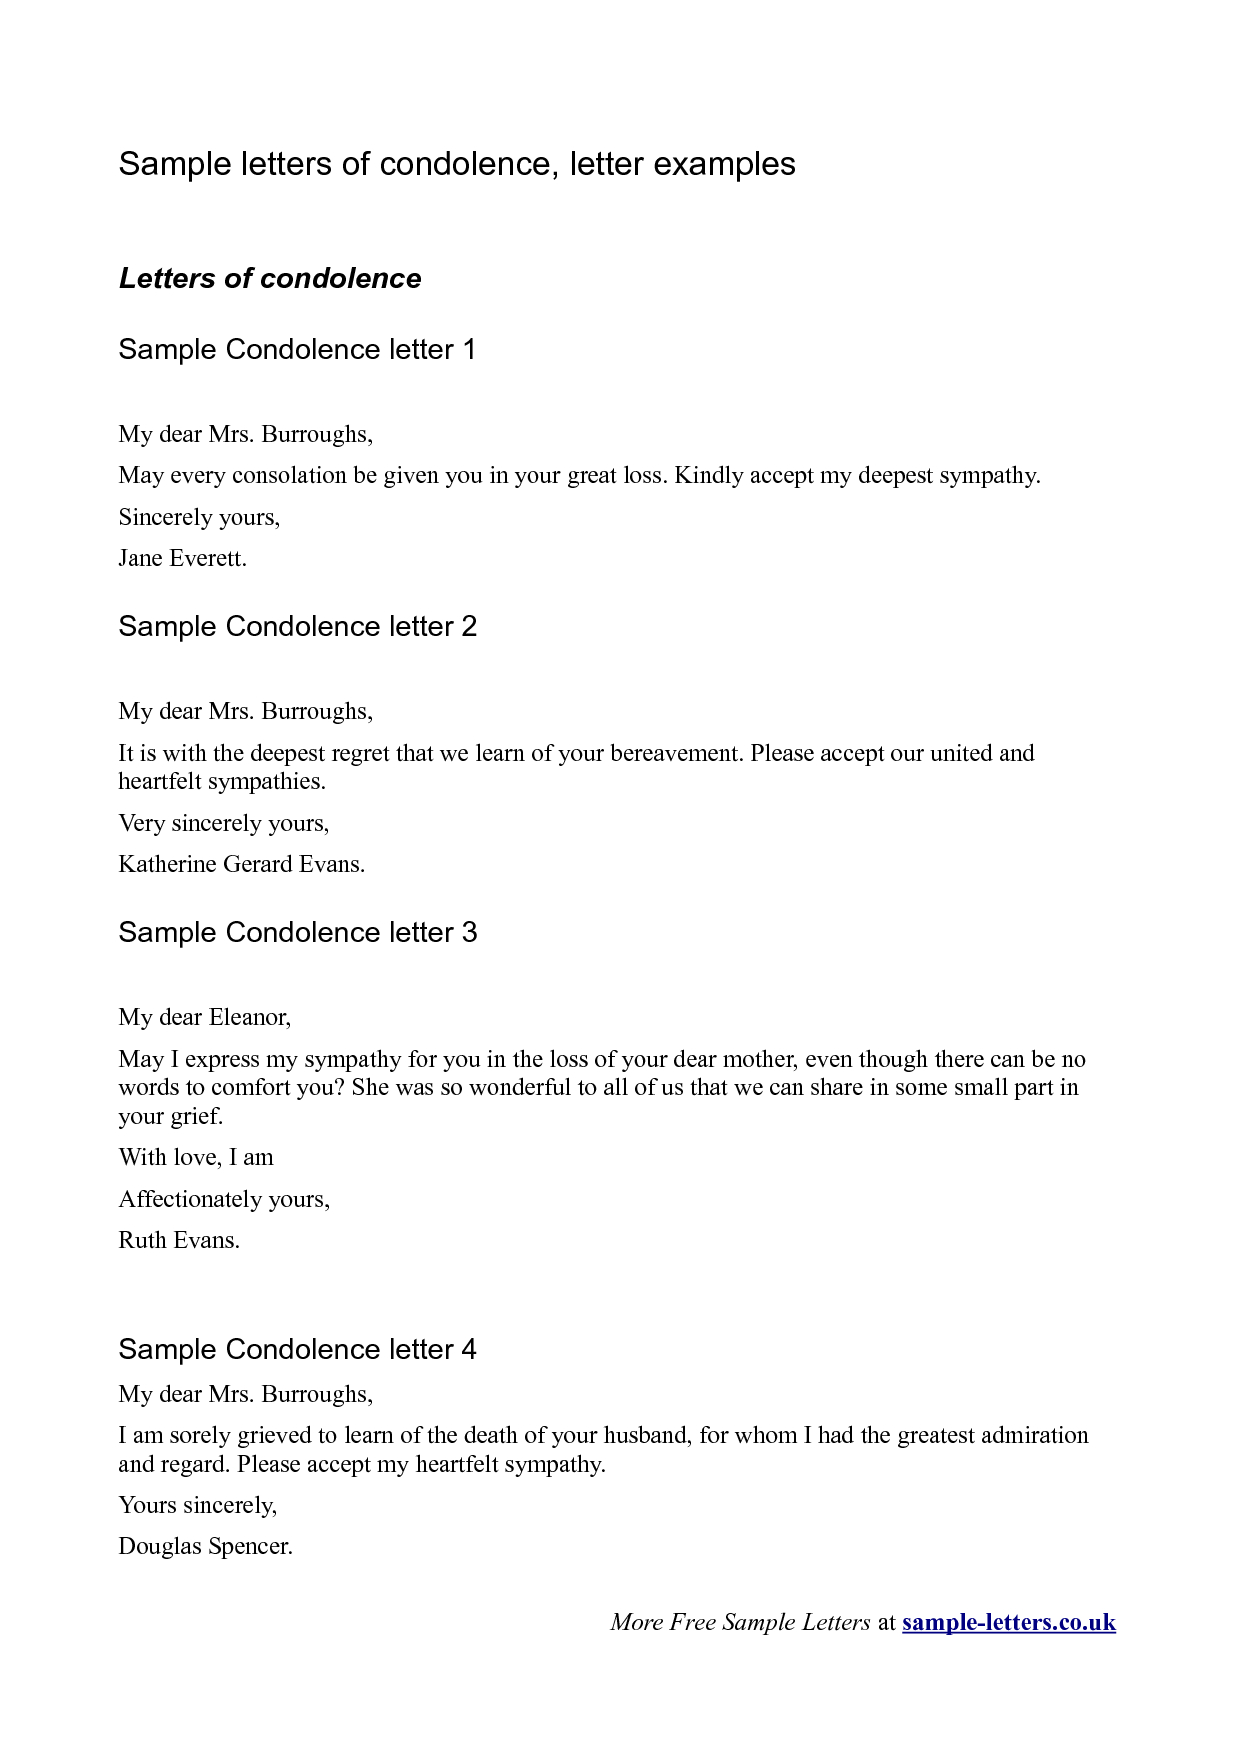 Grief Letter Template - Bereavement Sympathy Letter A Simple yet sincere Letter Of